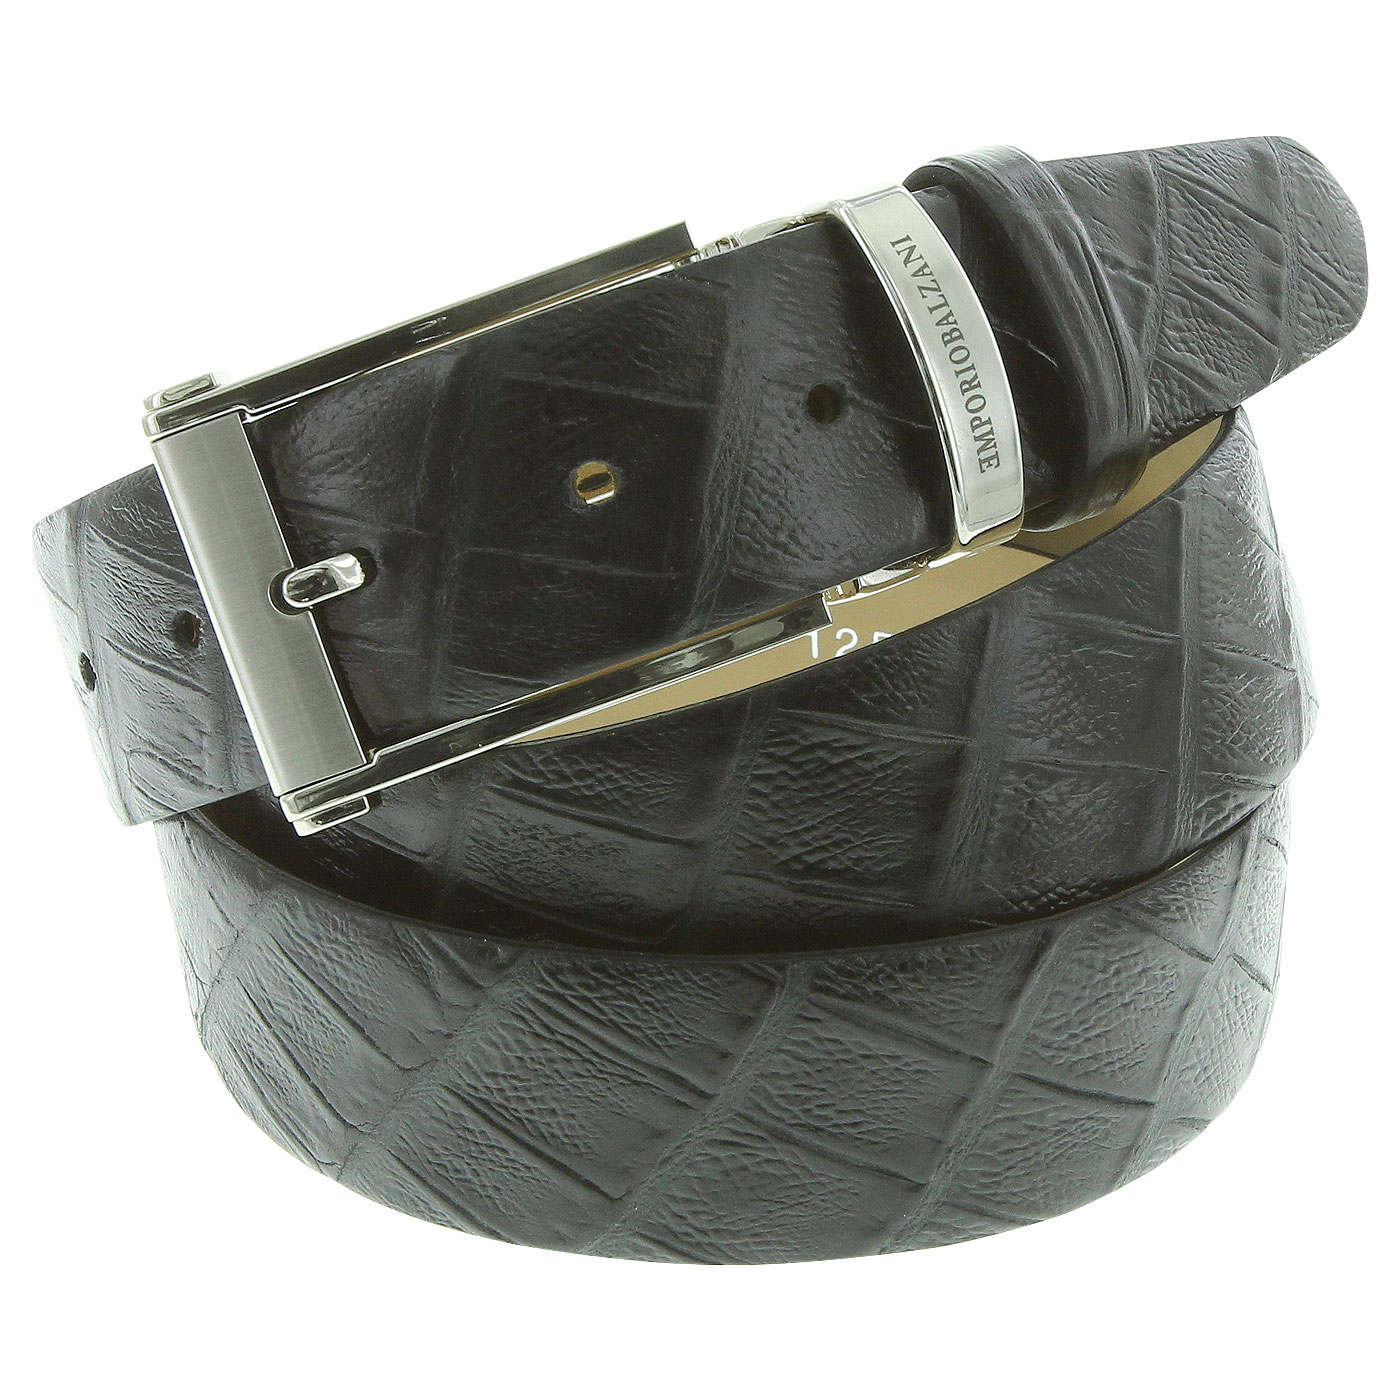 Full grain leather belts handcrafted in the USA. All belts come with a lifetime warranty.